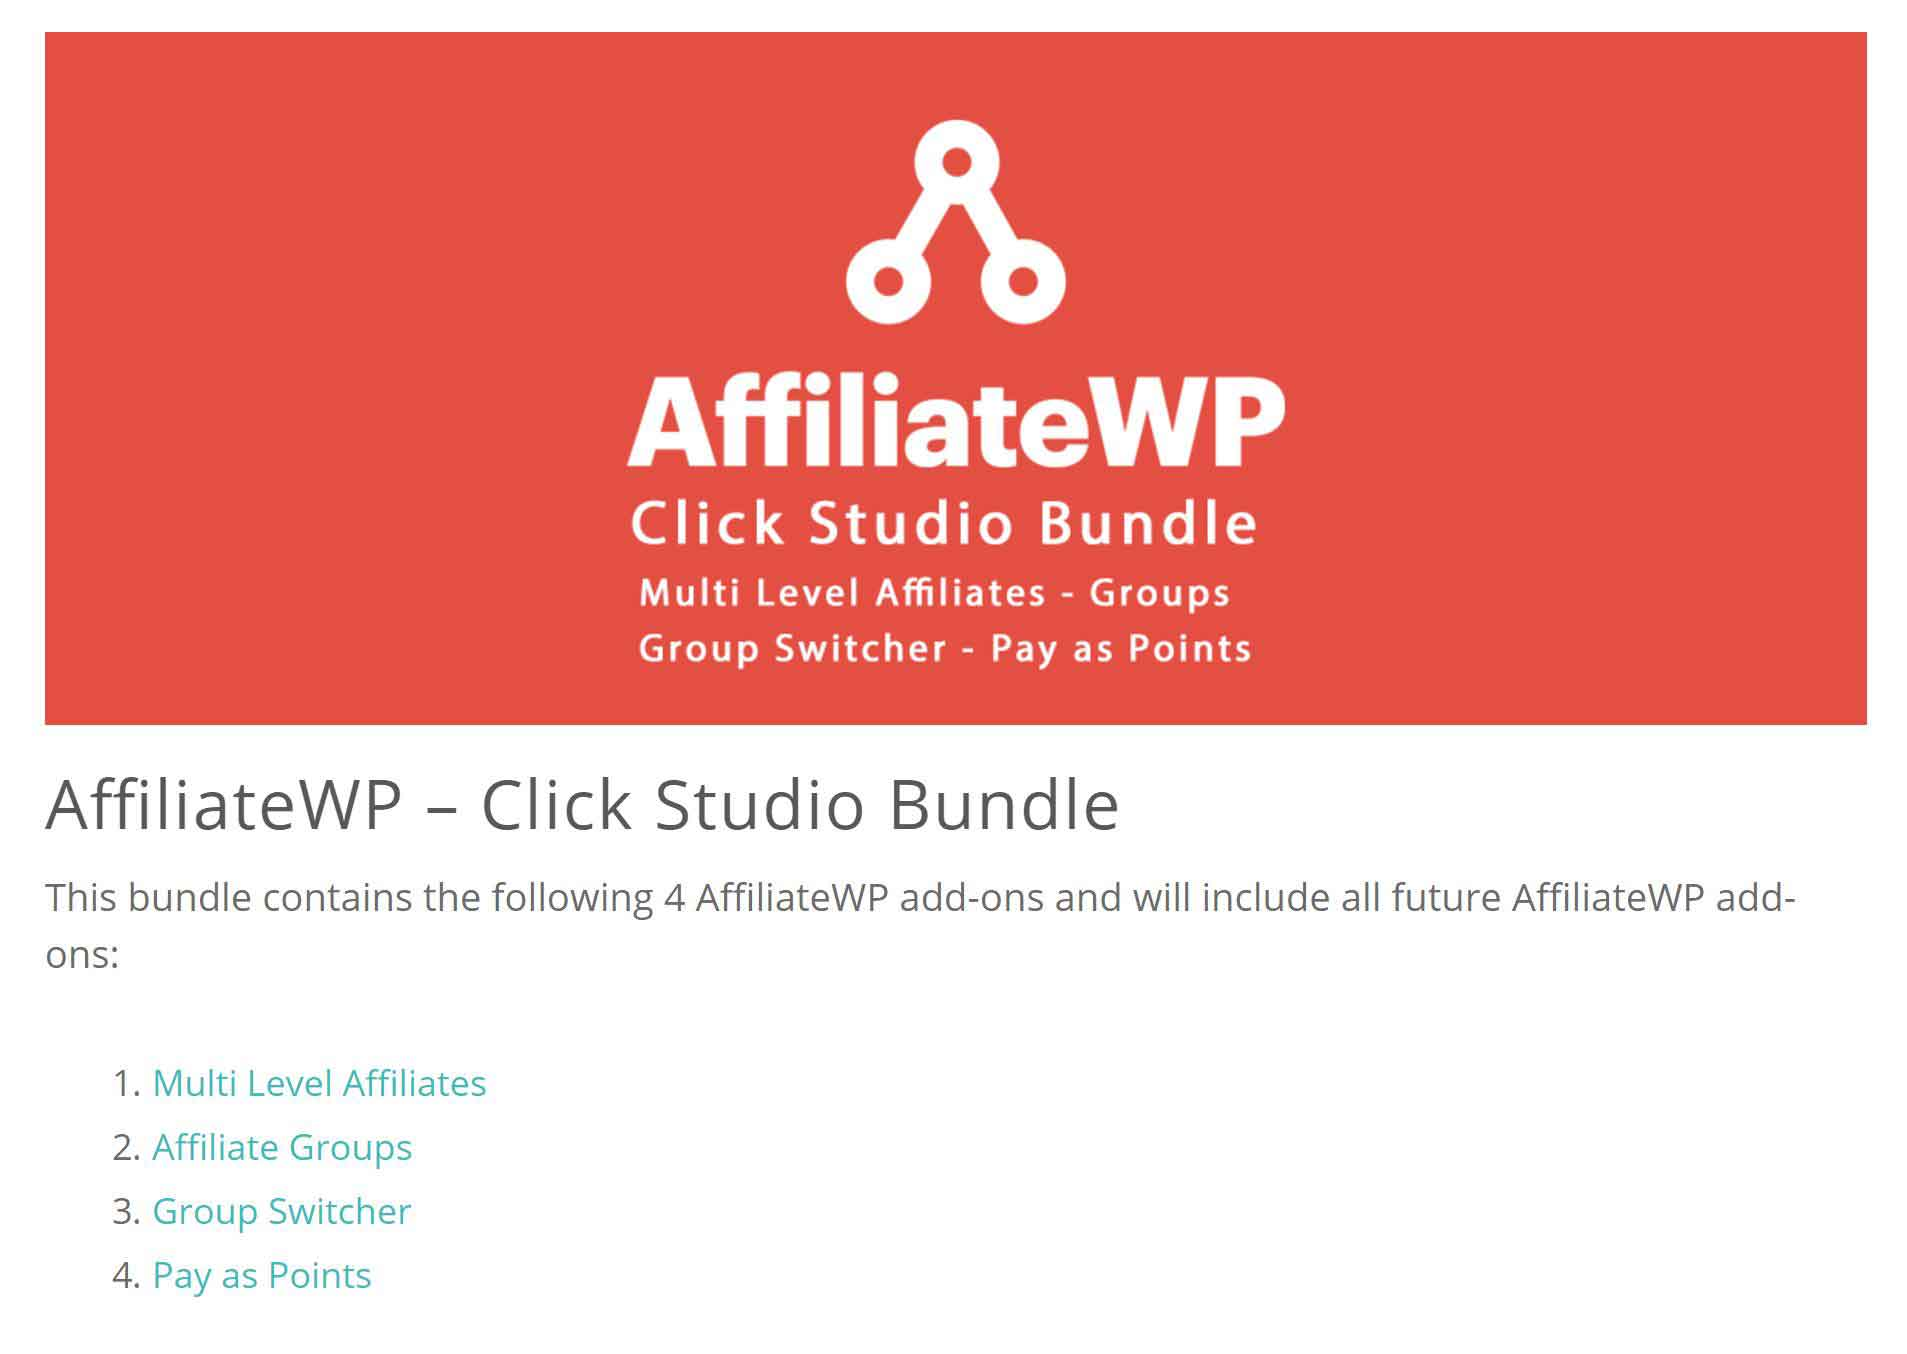 AffiliateWP – Click Studio Bundle